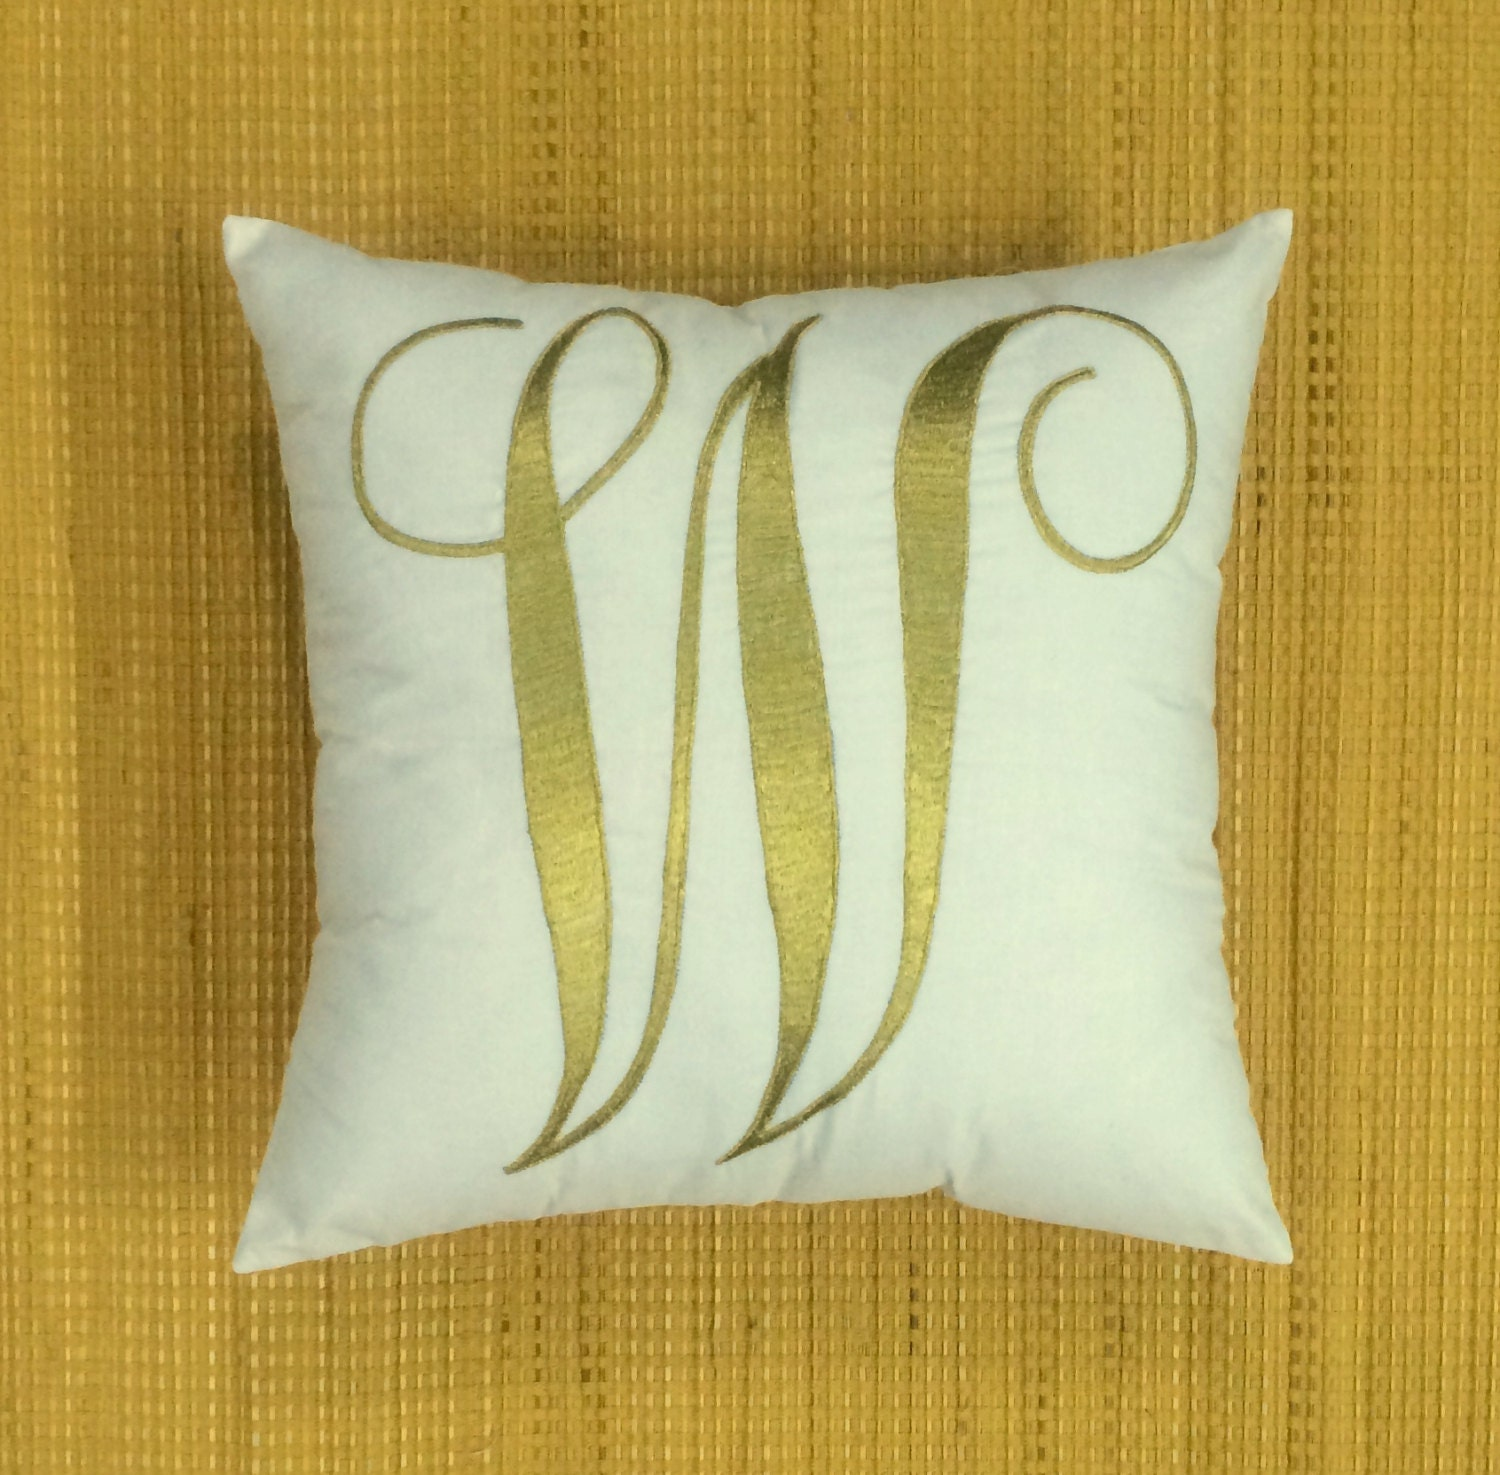 Decorative Initial Pillows : 40%OFF Initial Letter Pillow Decorative Personalized by NeaPillows